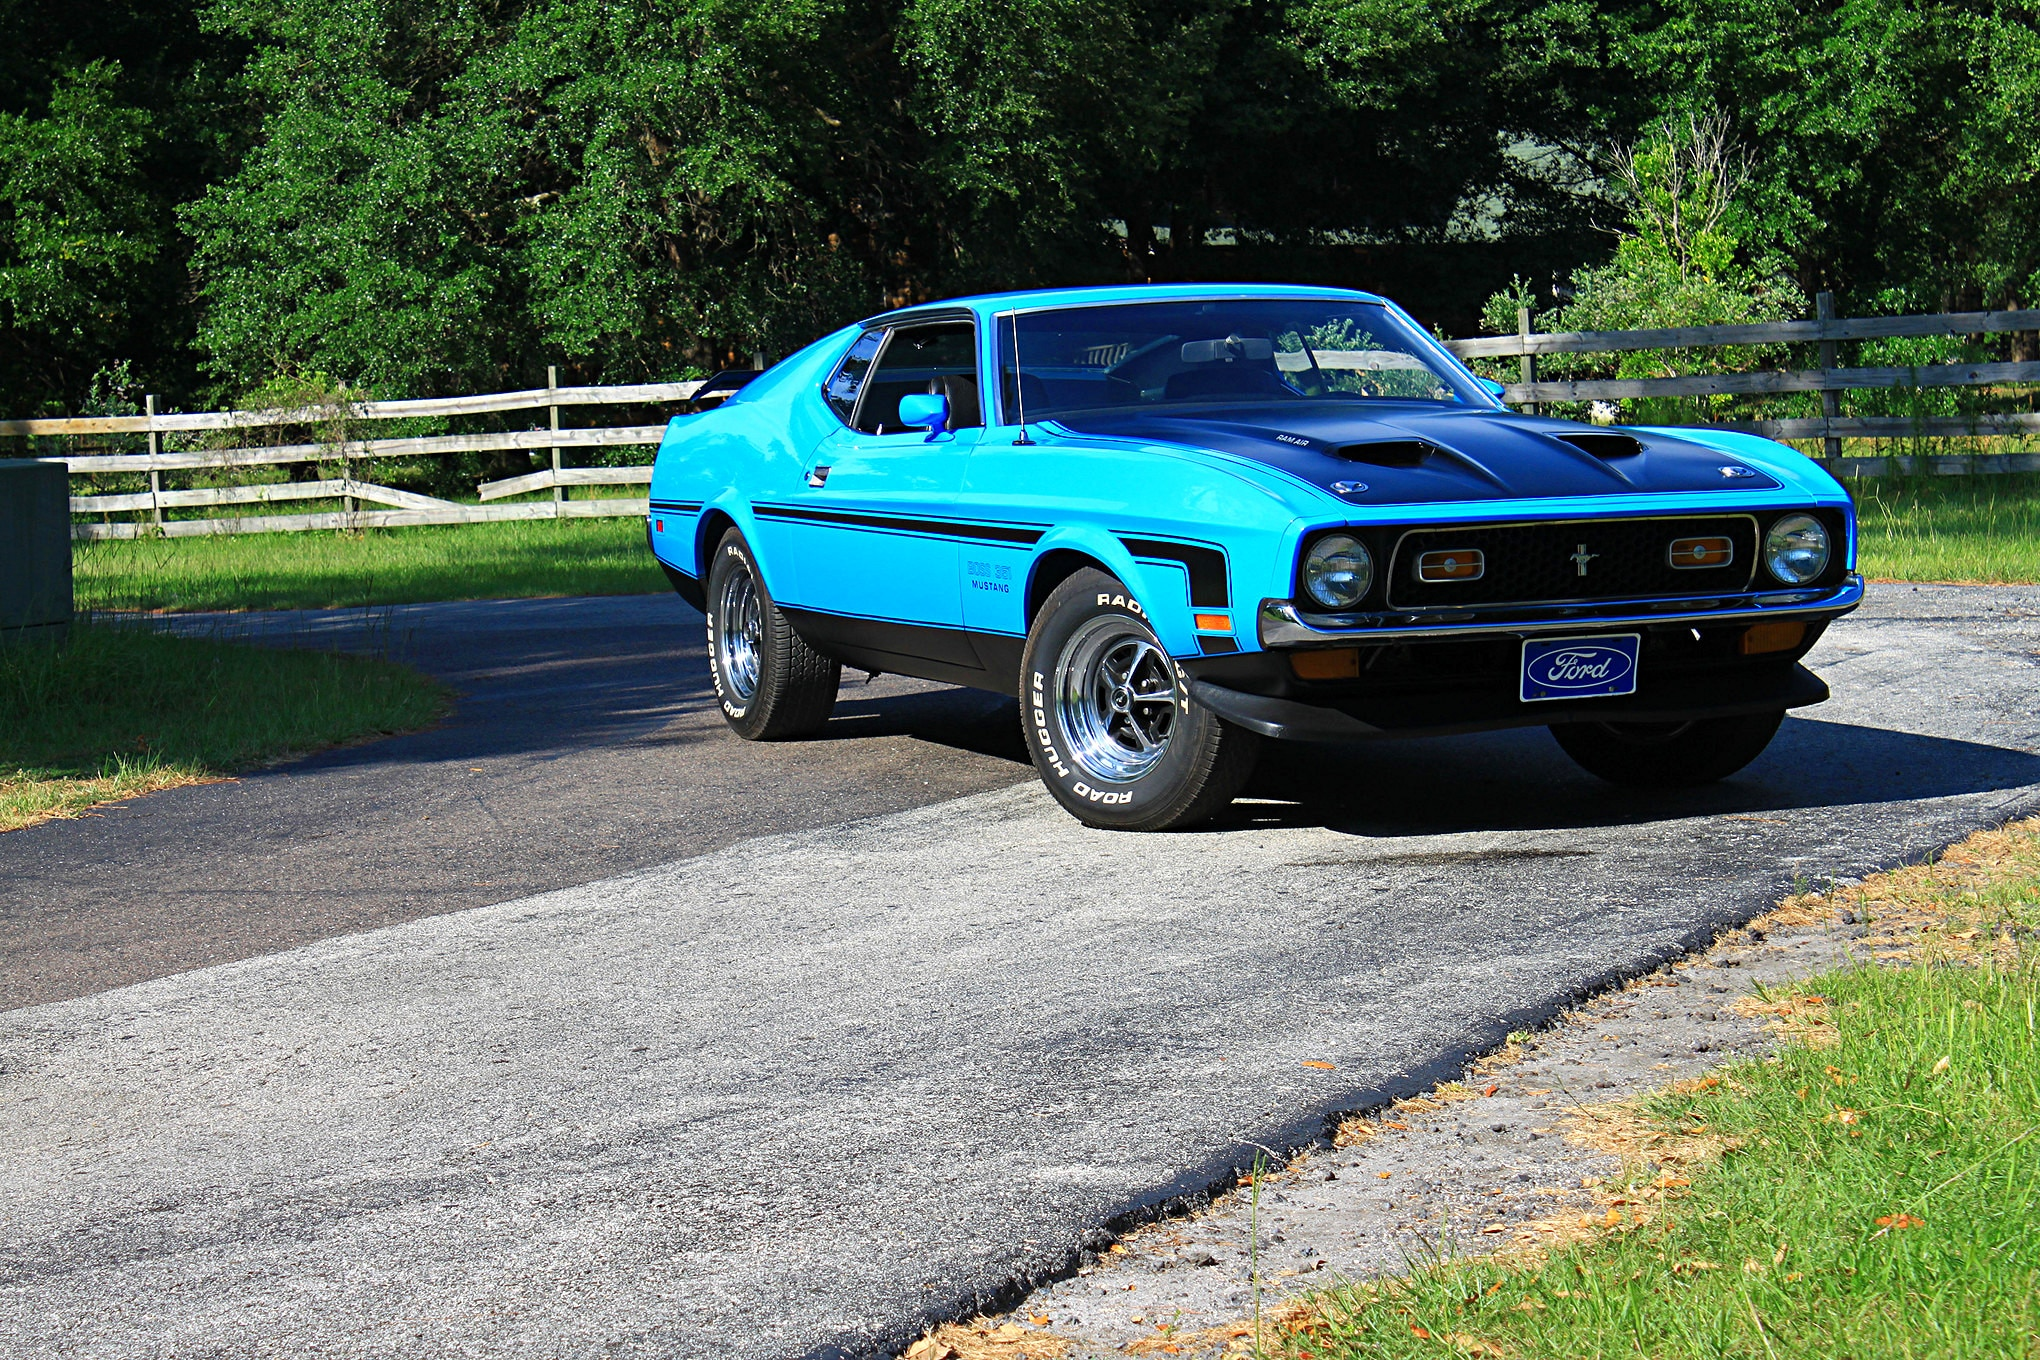 37 1971 Ford Mustang Boss 351 Blue Front Three Quarter